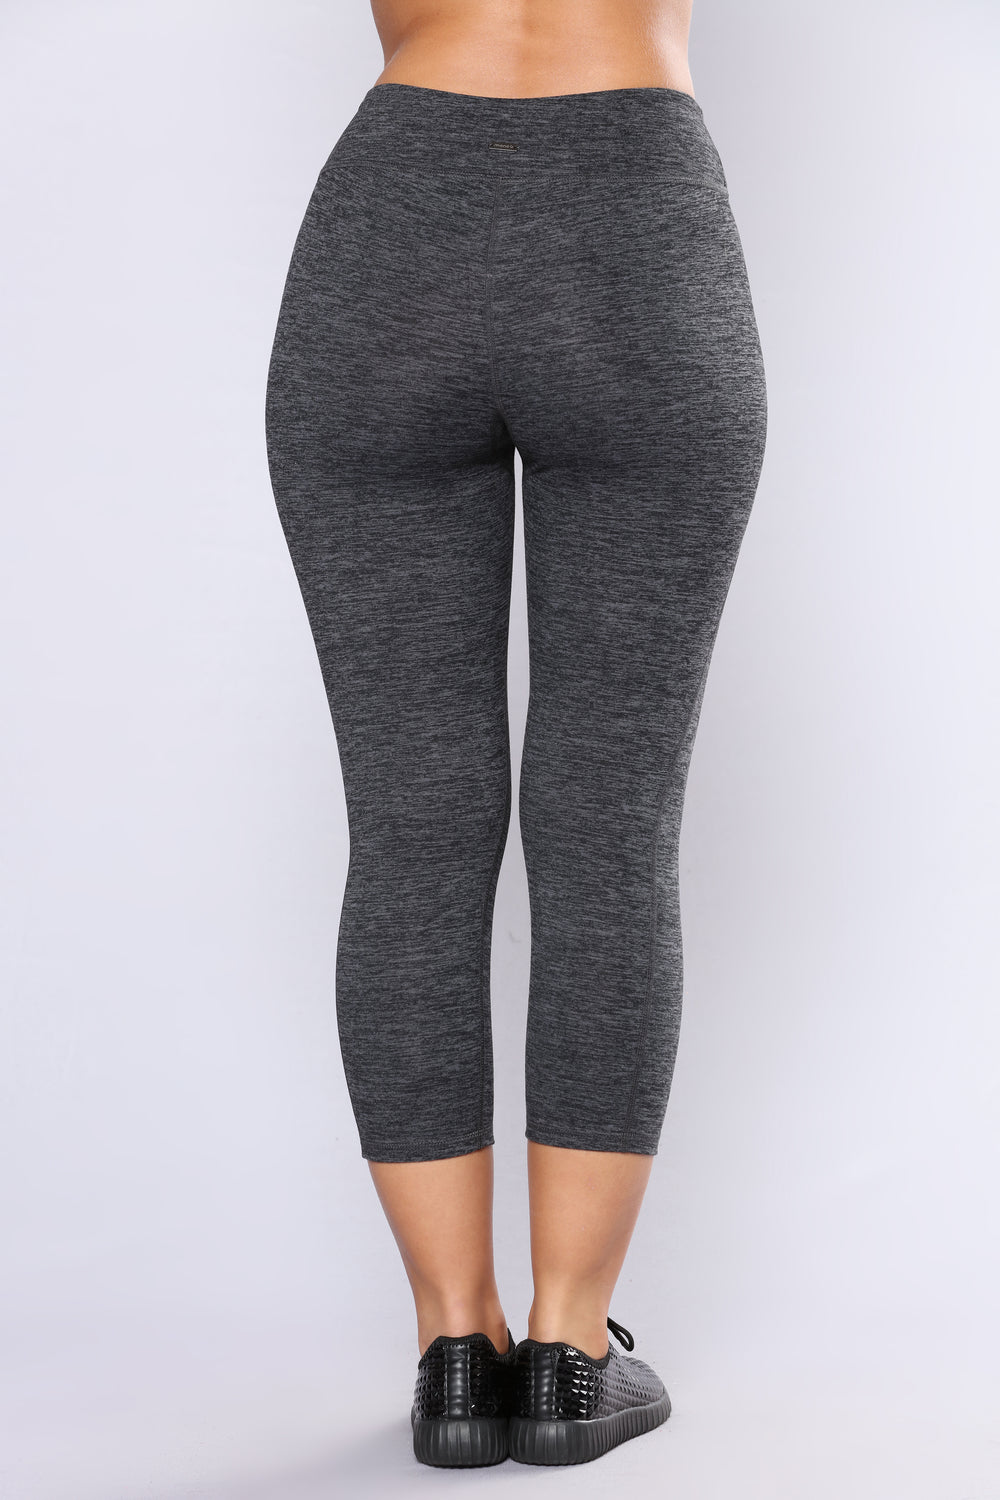 Crossfit Active Capri Leggings - Charcoal